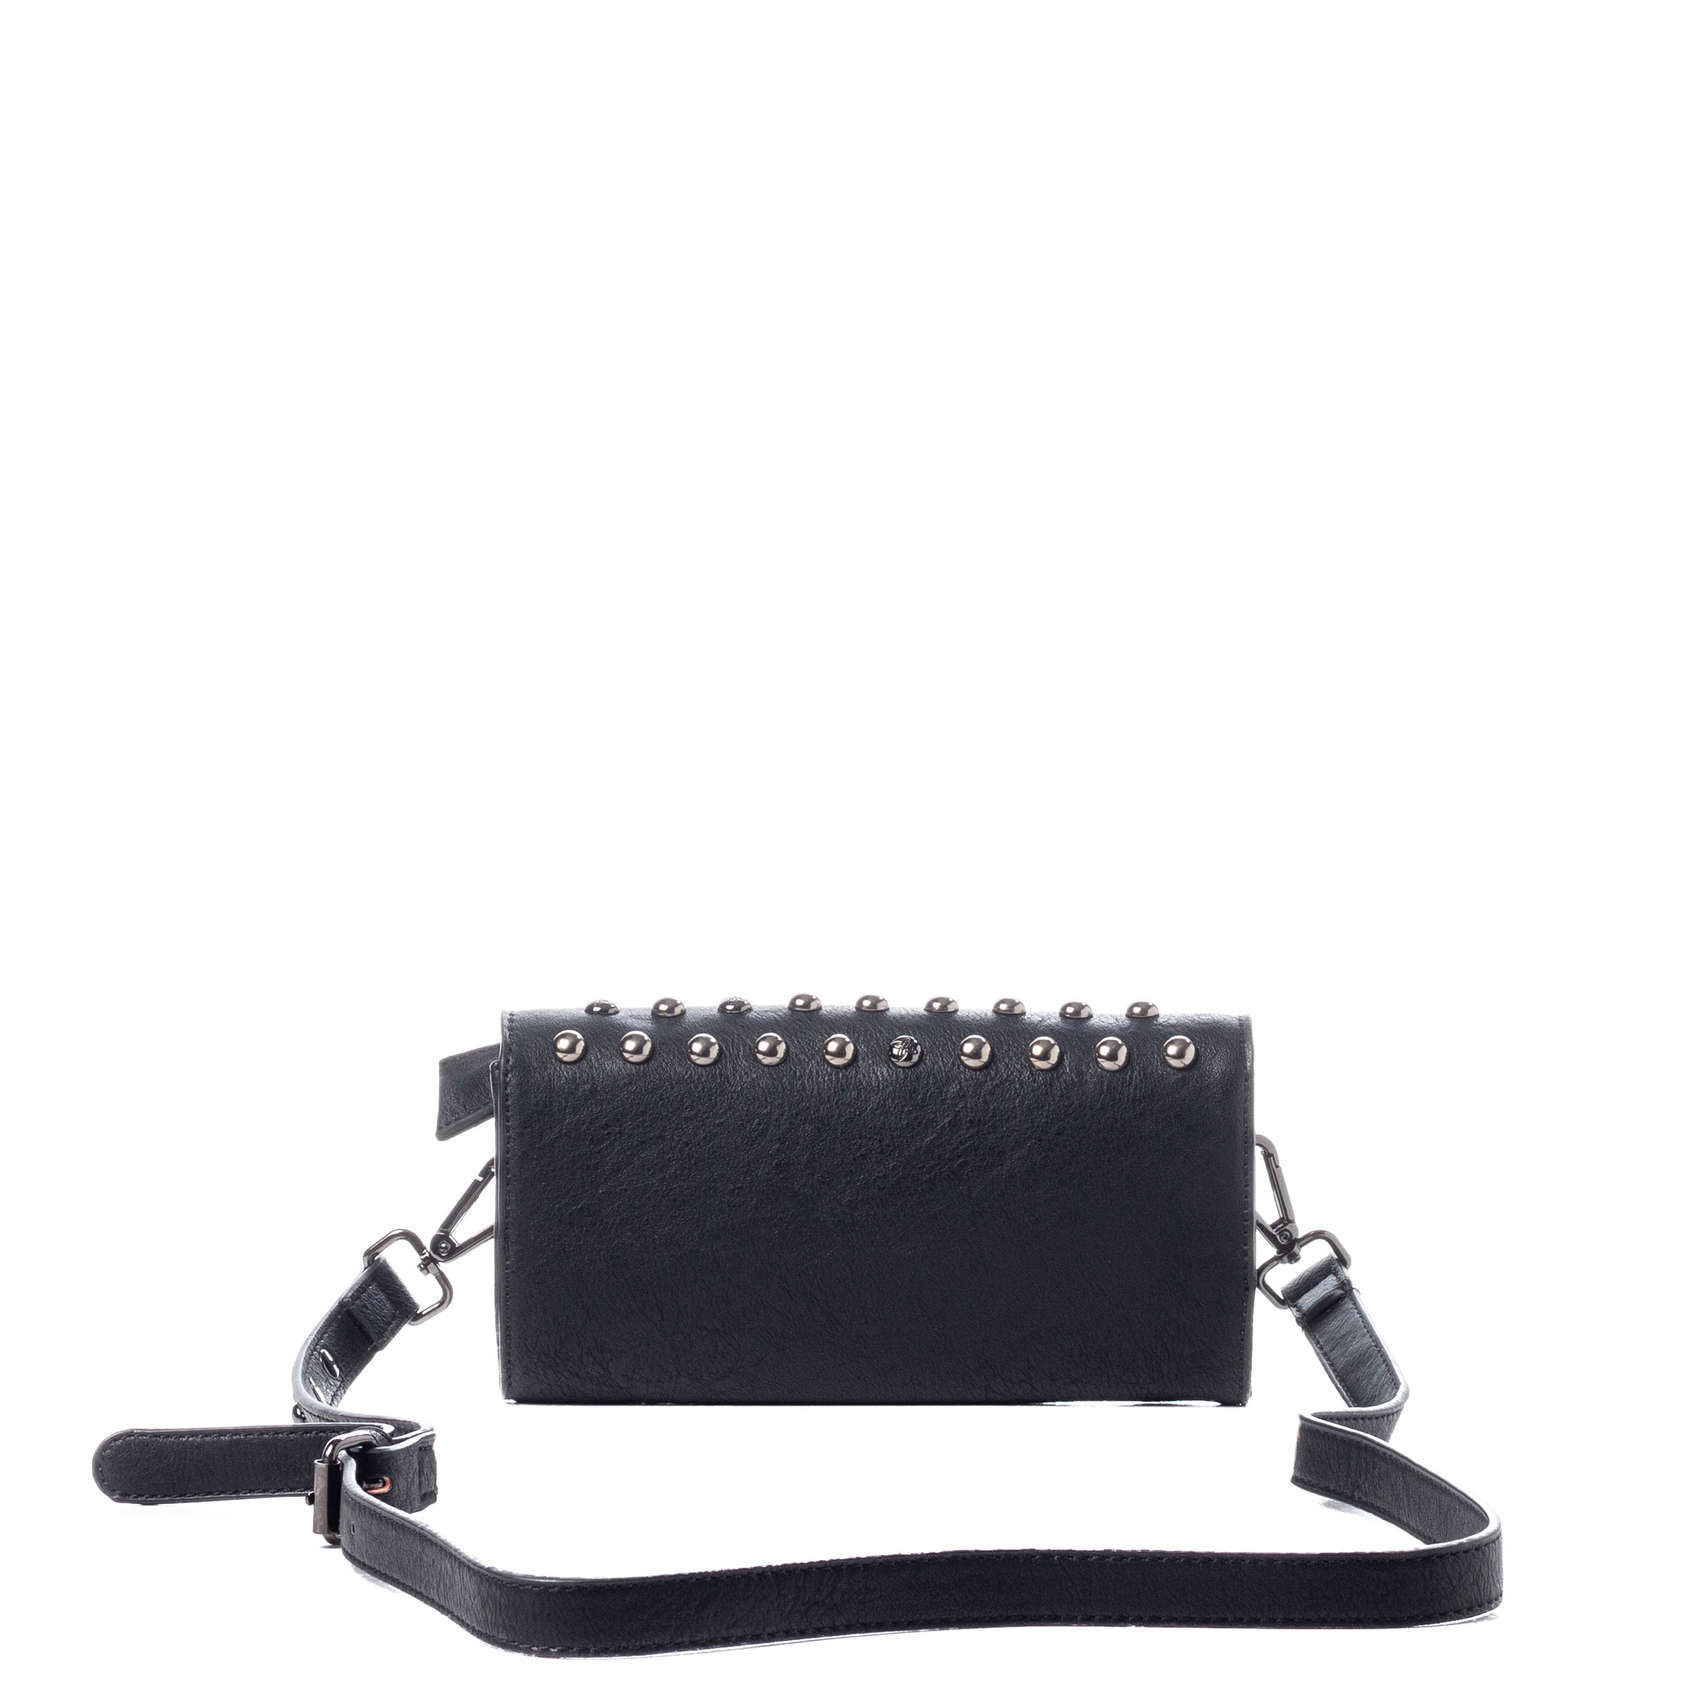 MARK CLUTCH BLACK